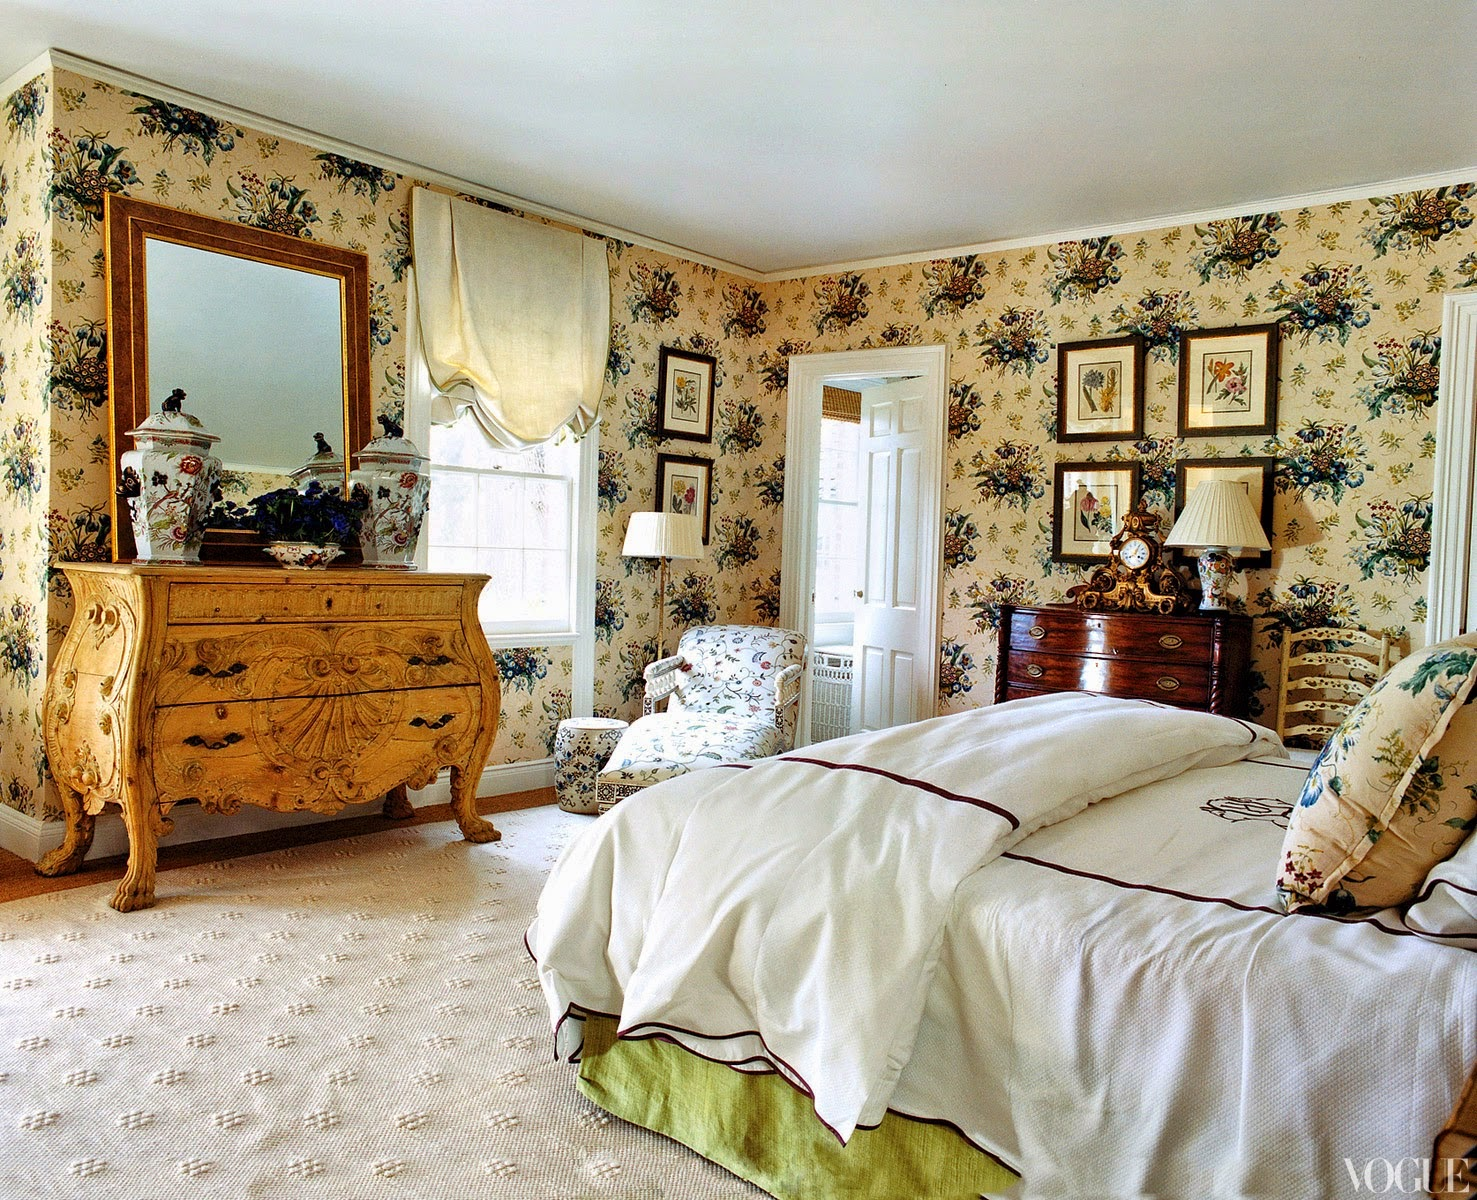 The Ivy League Preppy Bedroom Many Times Borders On The New England  Colonial Style With Four Posters And Canopies.